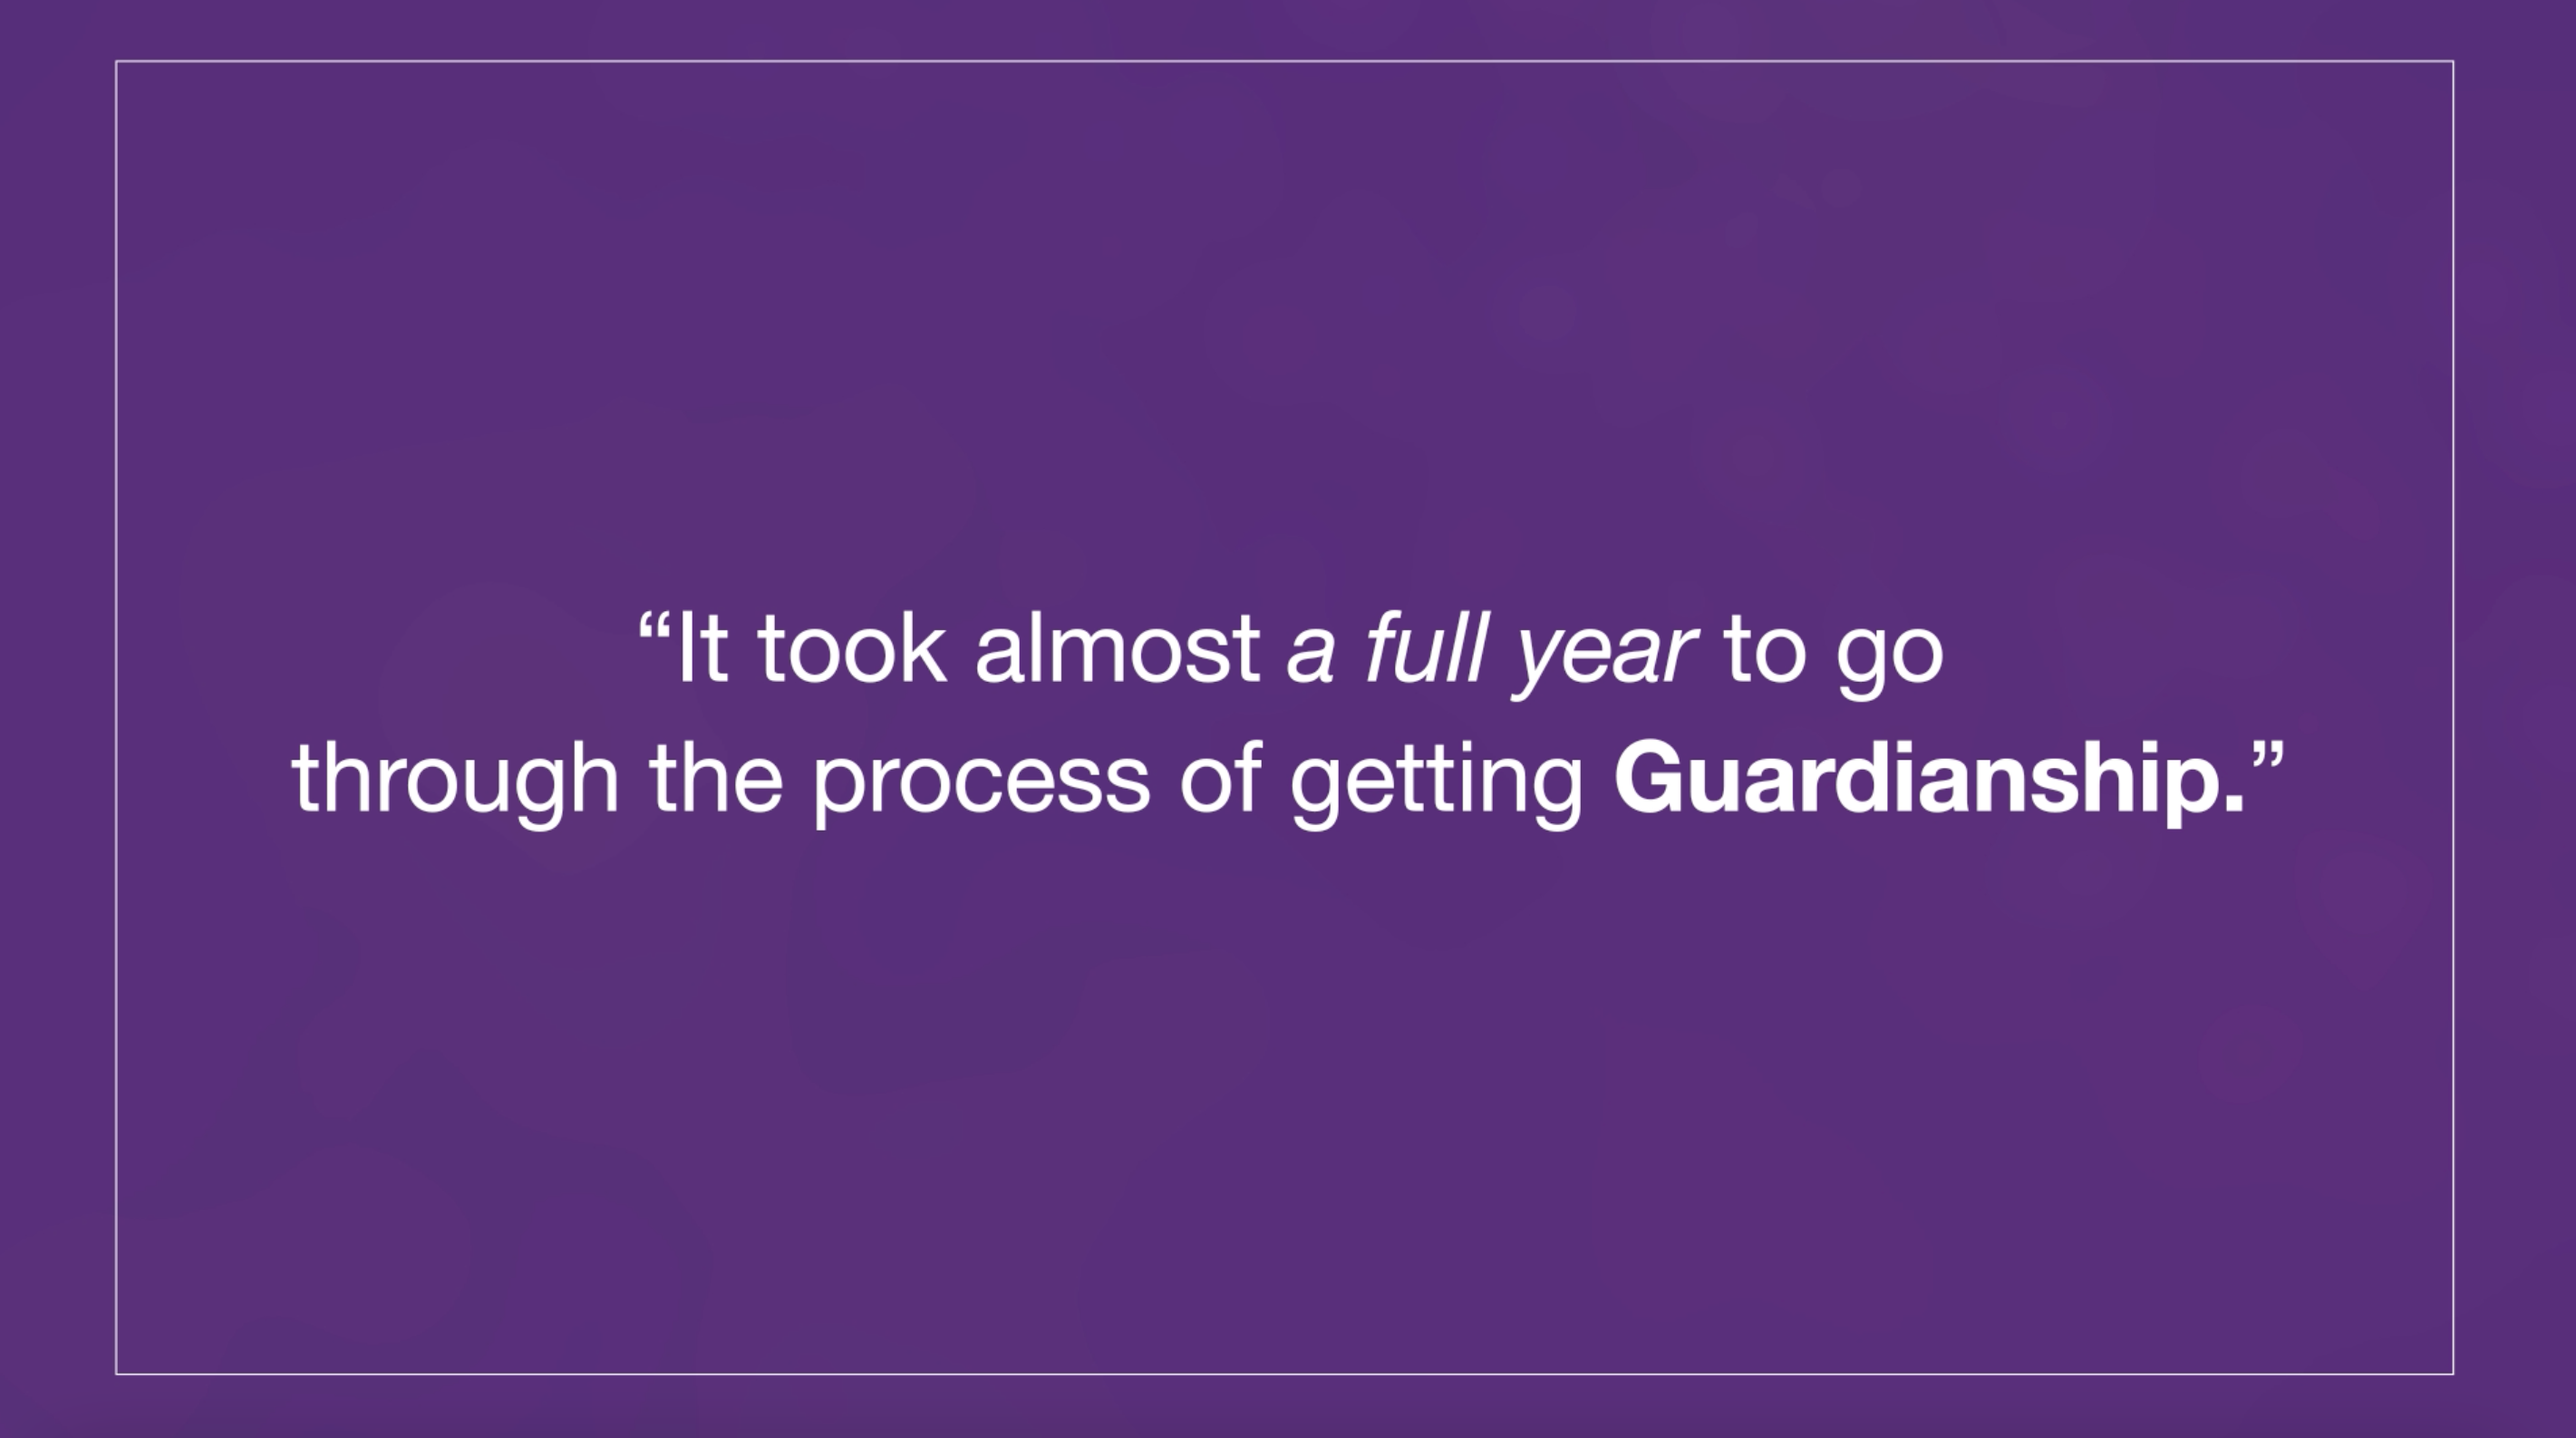 """Text on purple background: """"It took almost a full year to go through the process of getting Guardianship."""""""